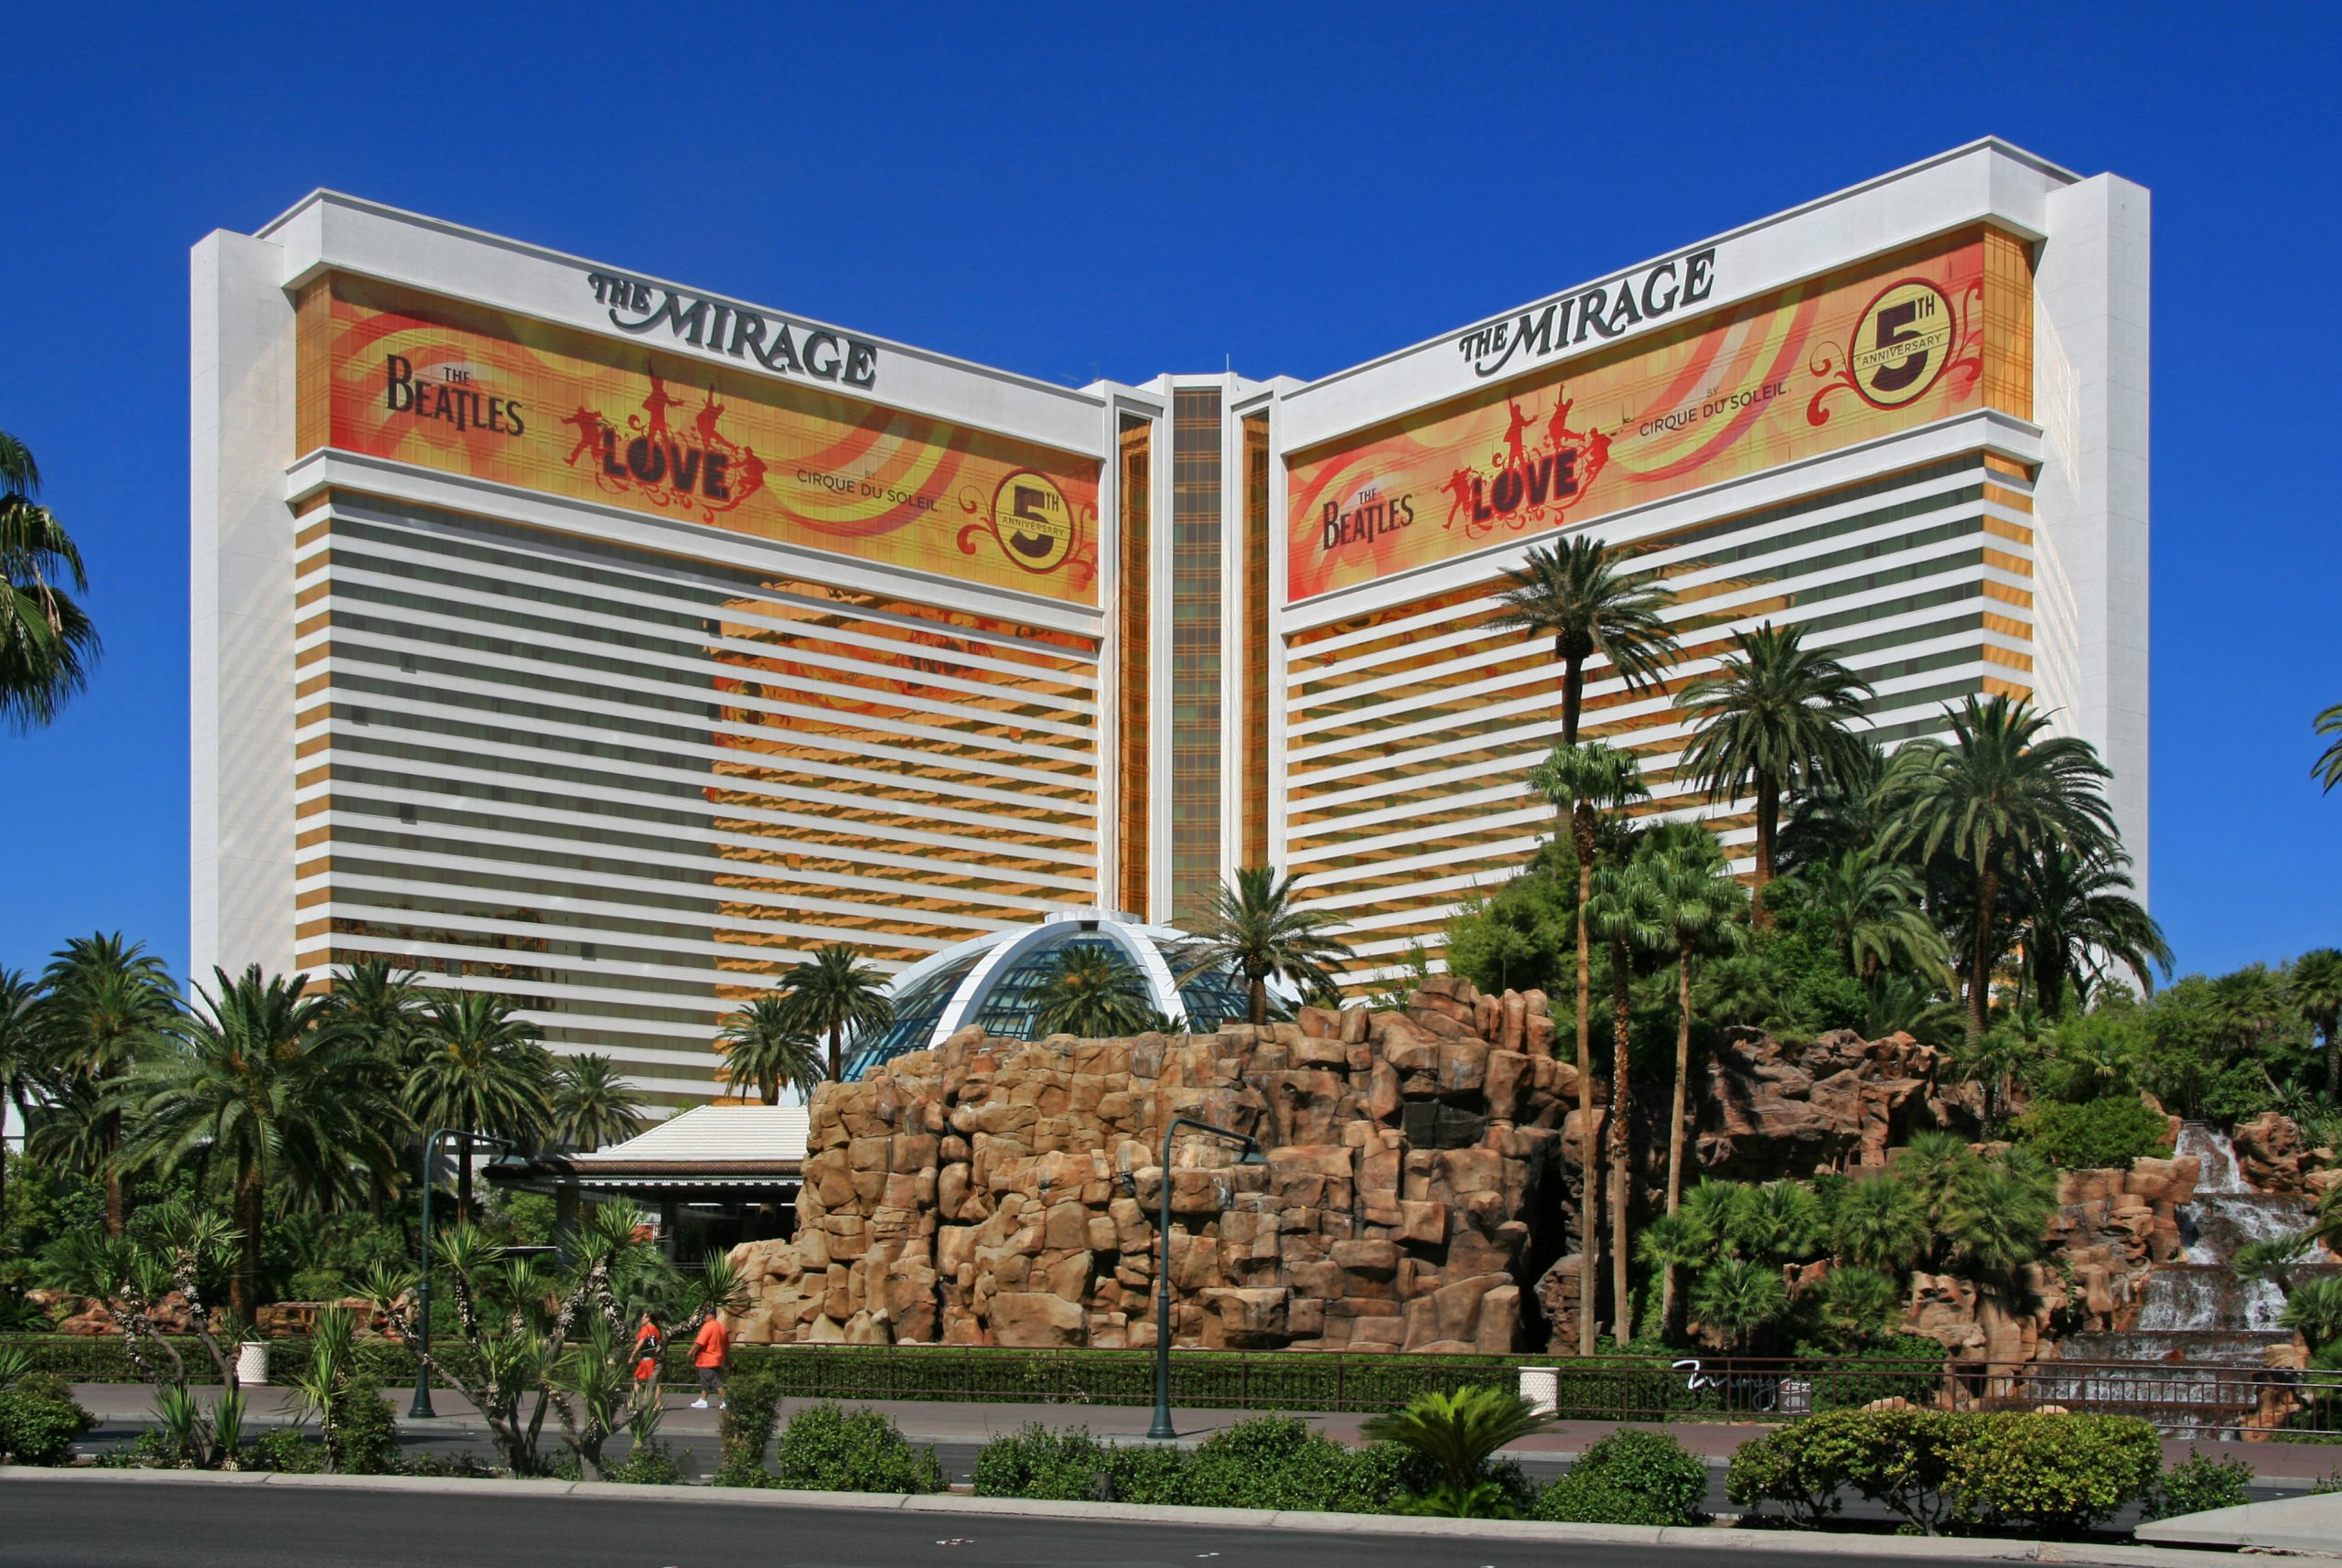 Mirage Hotel - Things That You Should Not Miss in Las Vegas